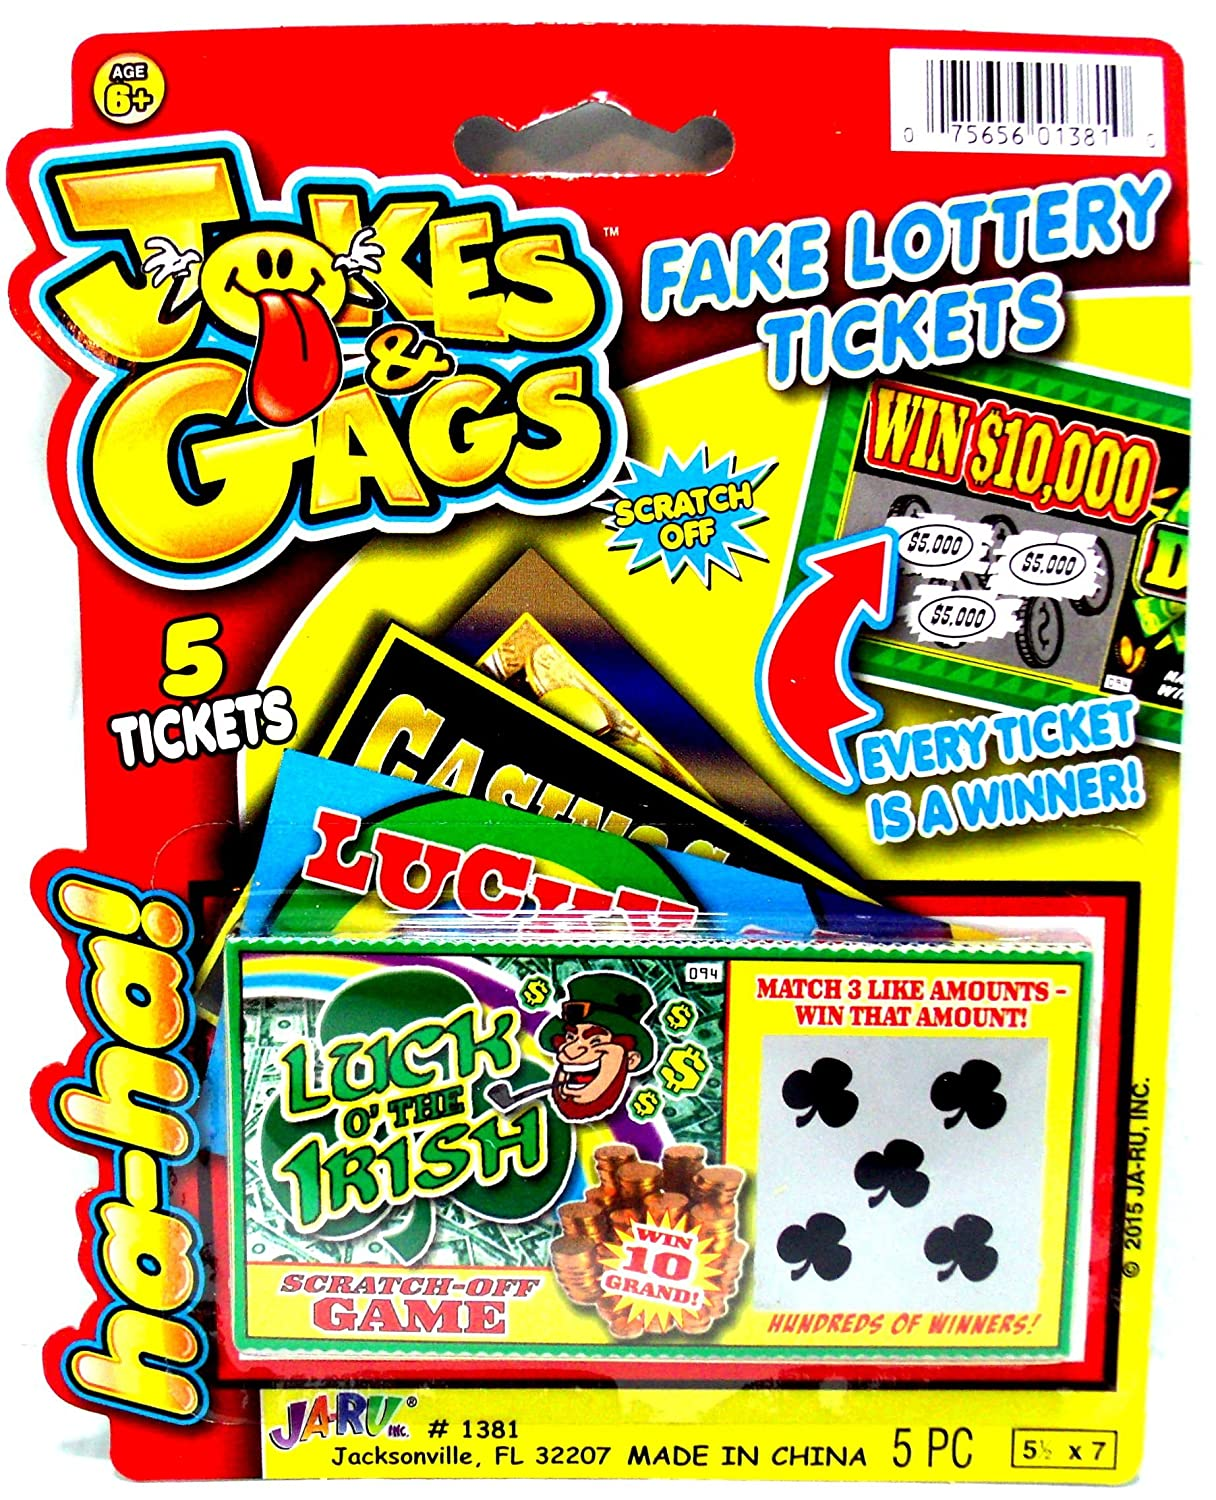 Practical Ticket 5 000 Pack Always Lottery Scratch-off